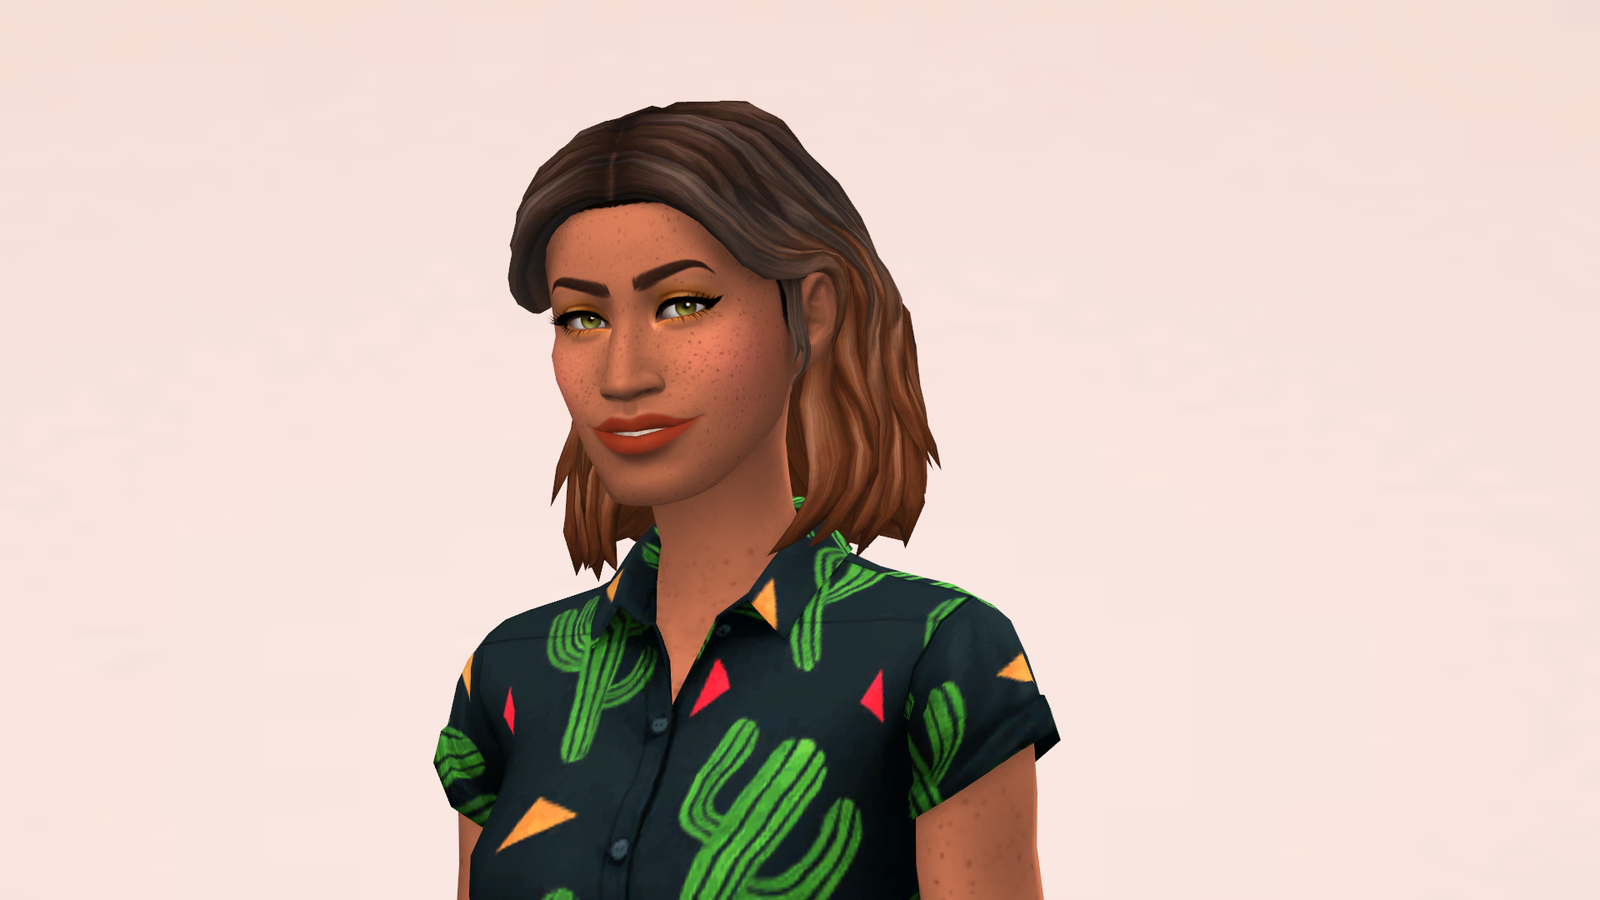 The Most Essential Sims 4 Mods For Eyes Skin And Hair